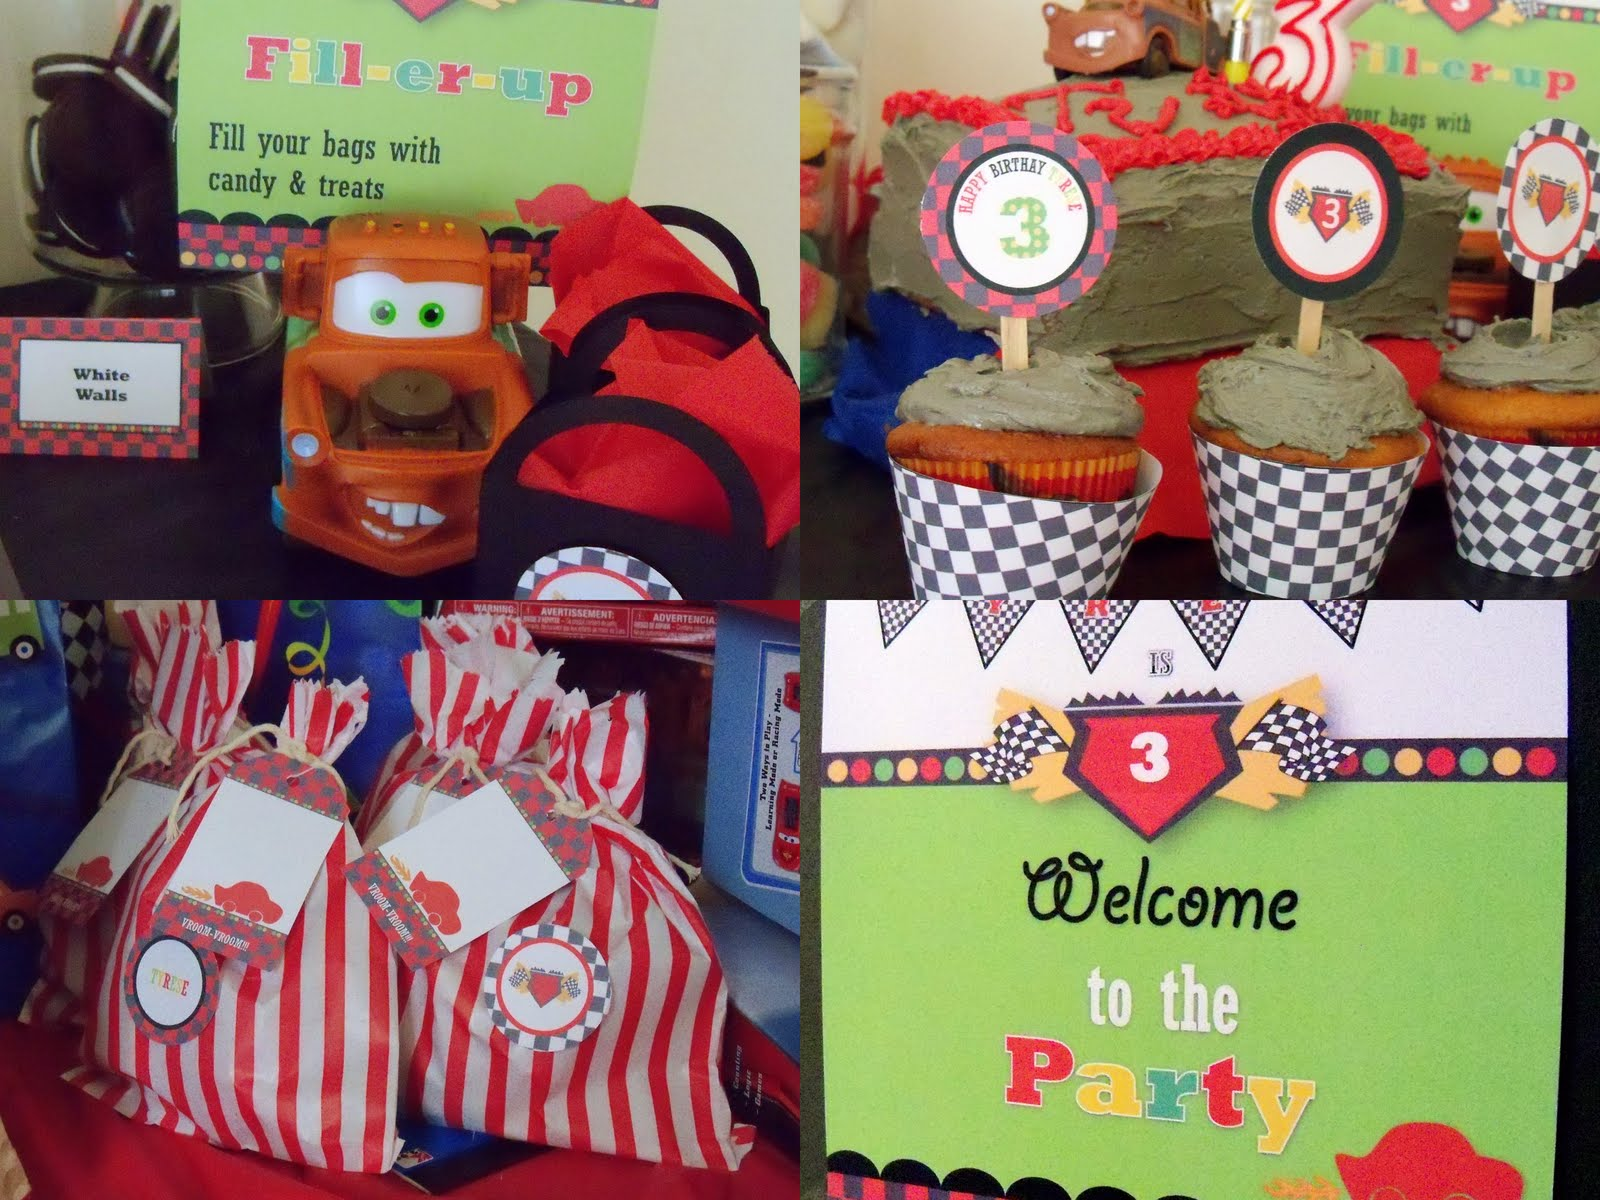 Cars Party Decorations Candy Bag Idea Google Image Result For Http 1bpblogspotcom